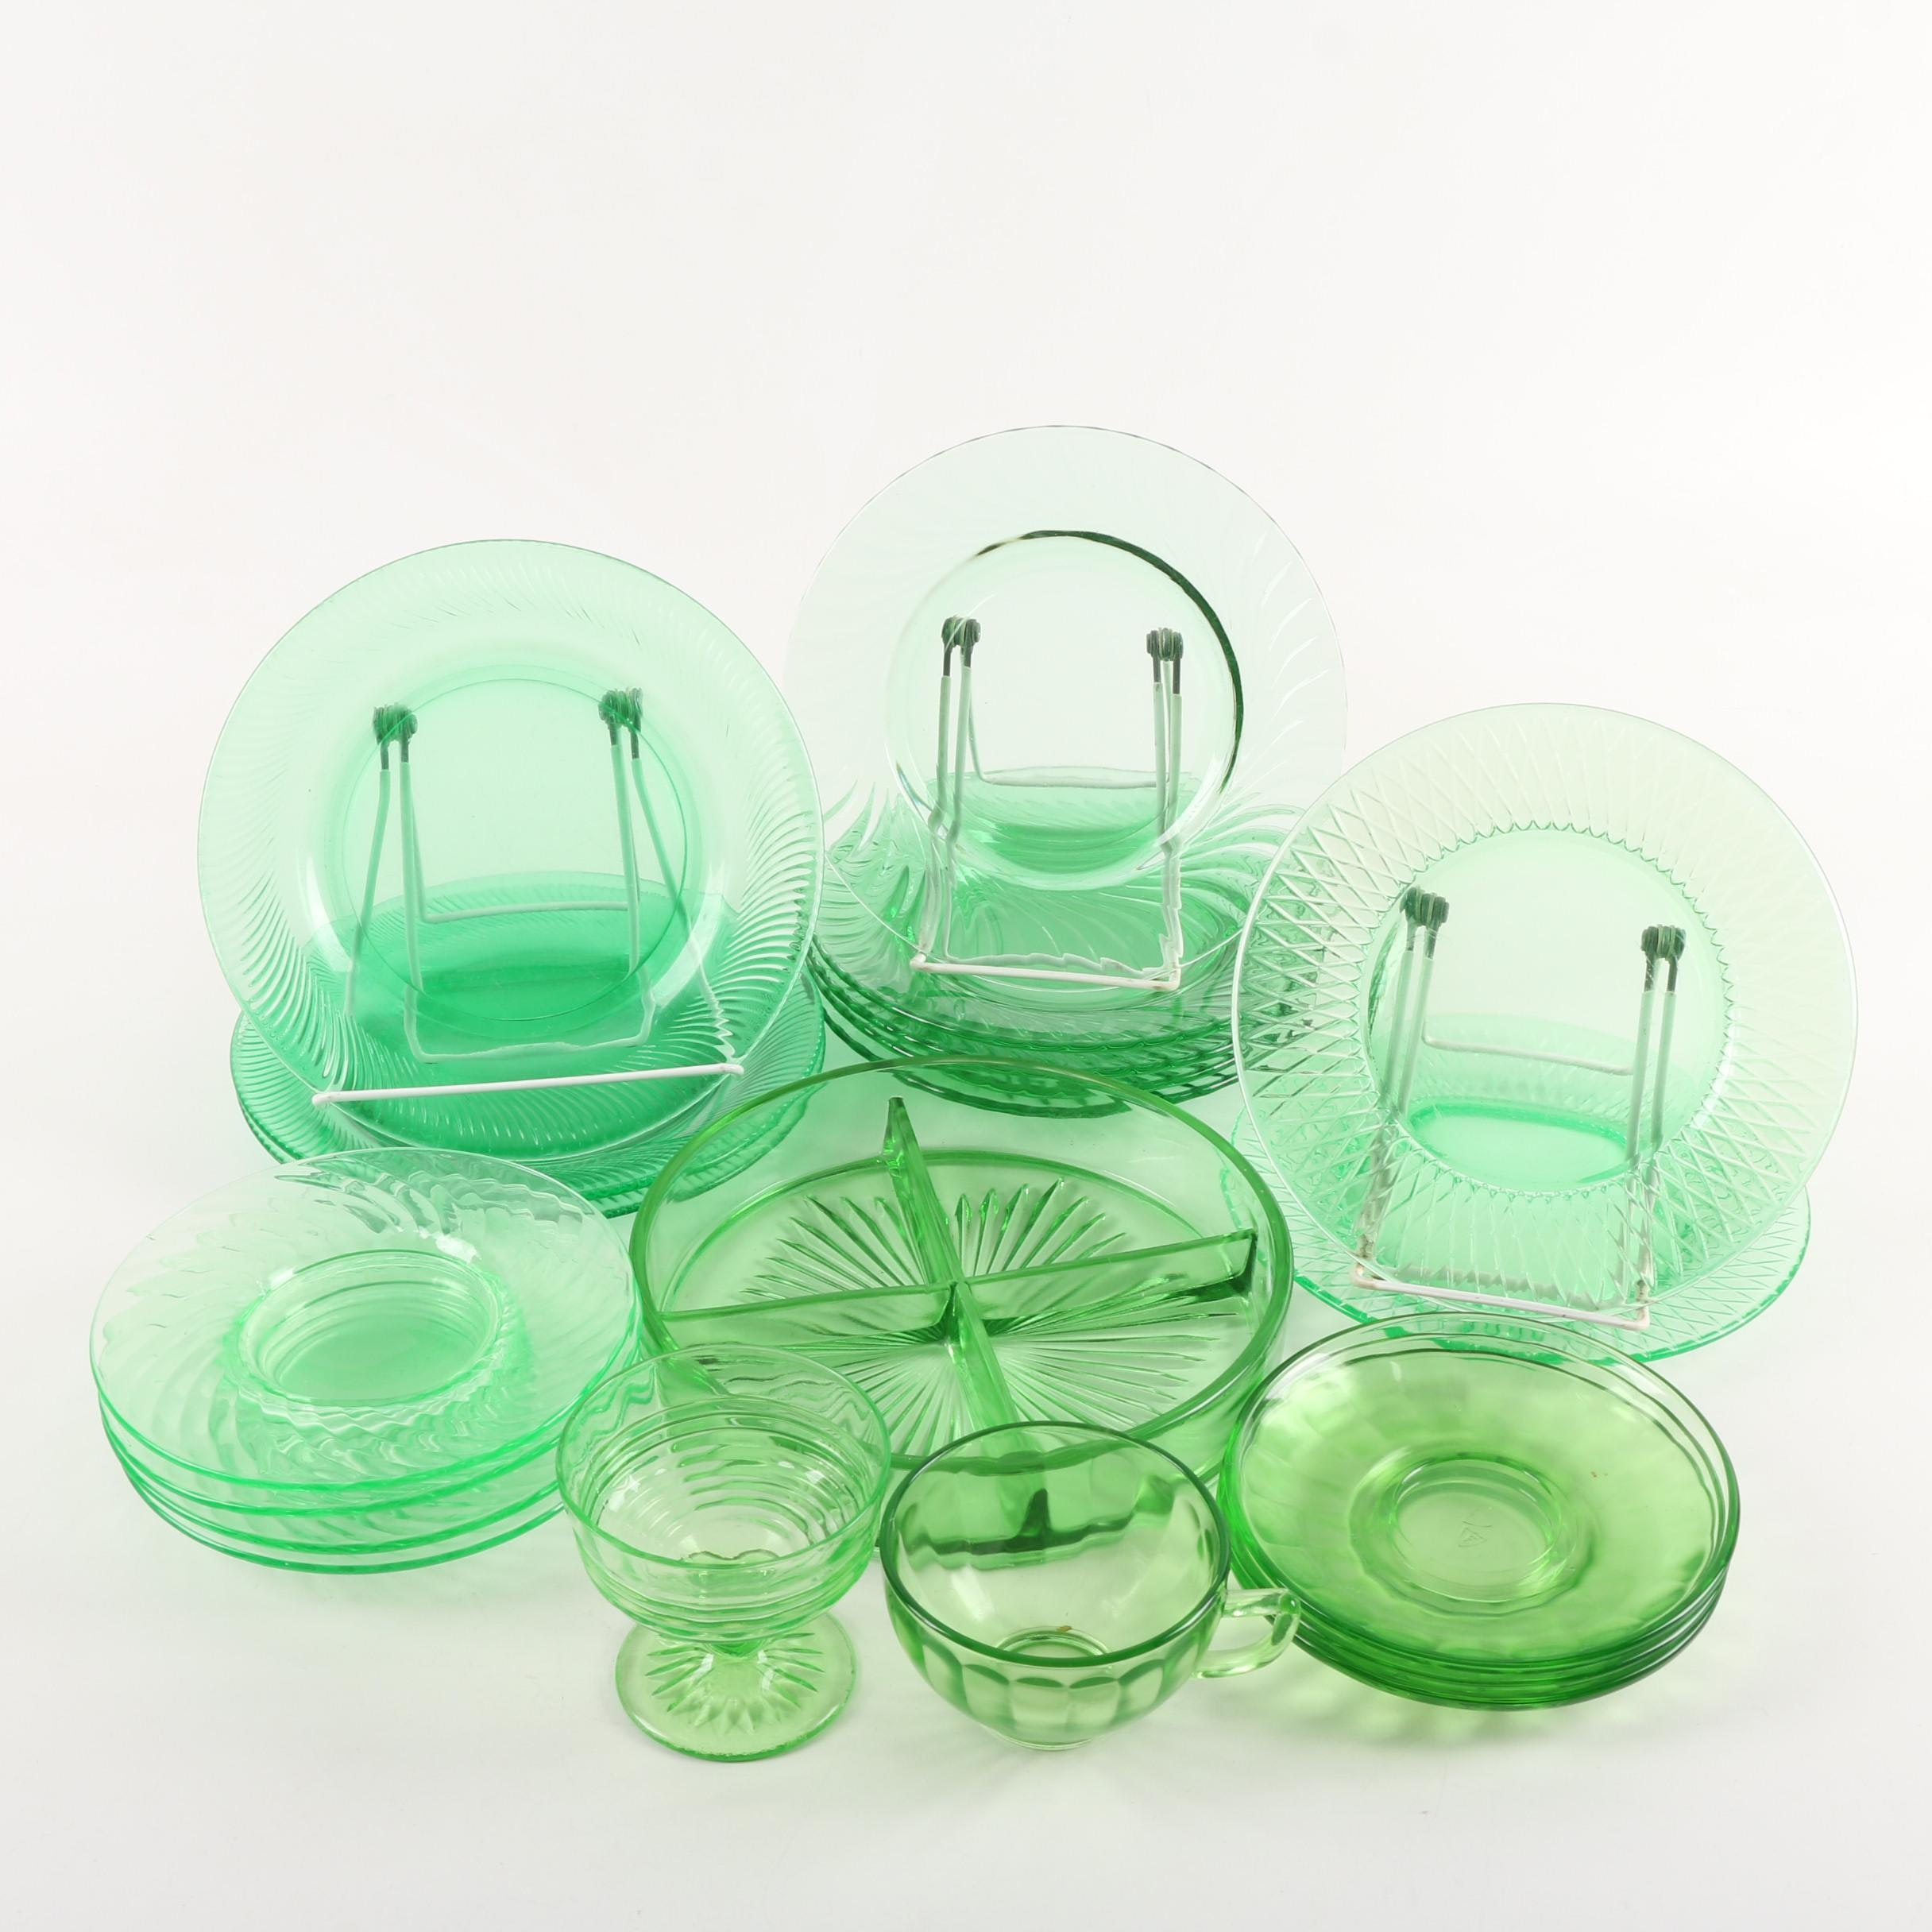 Vintage Green Depression Glass Dinnerware featuring Imperial Glass-Ohio